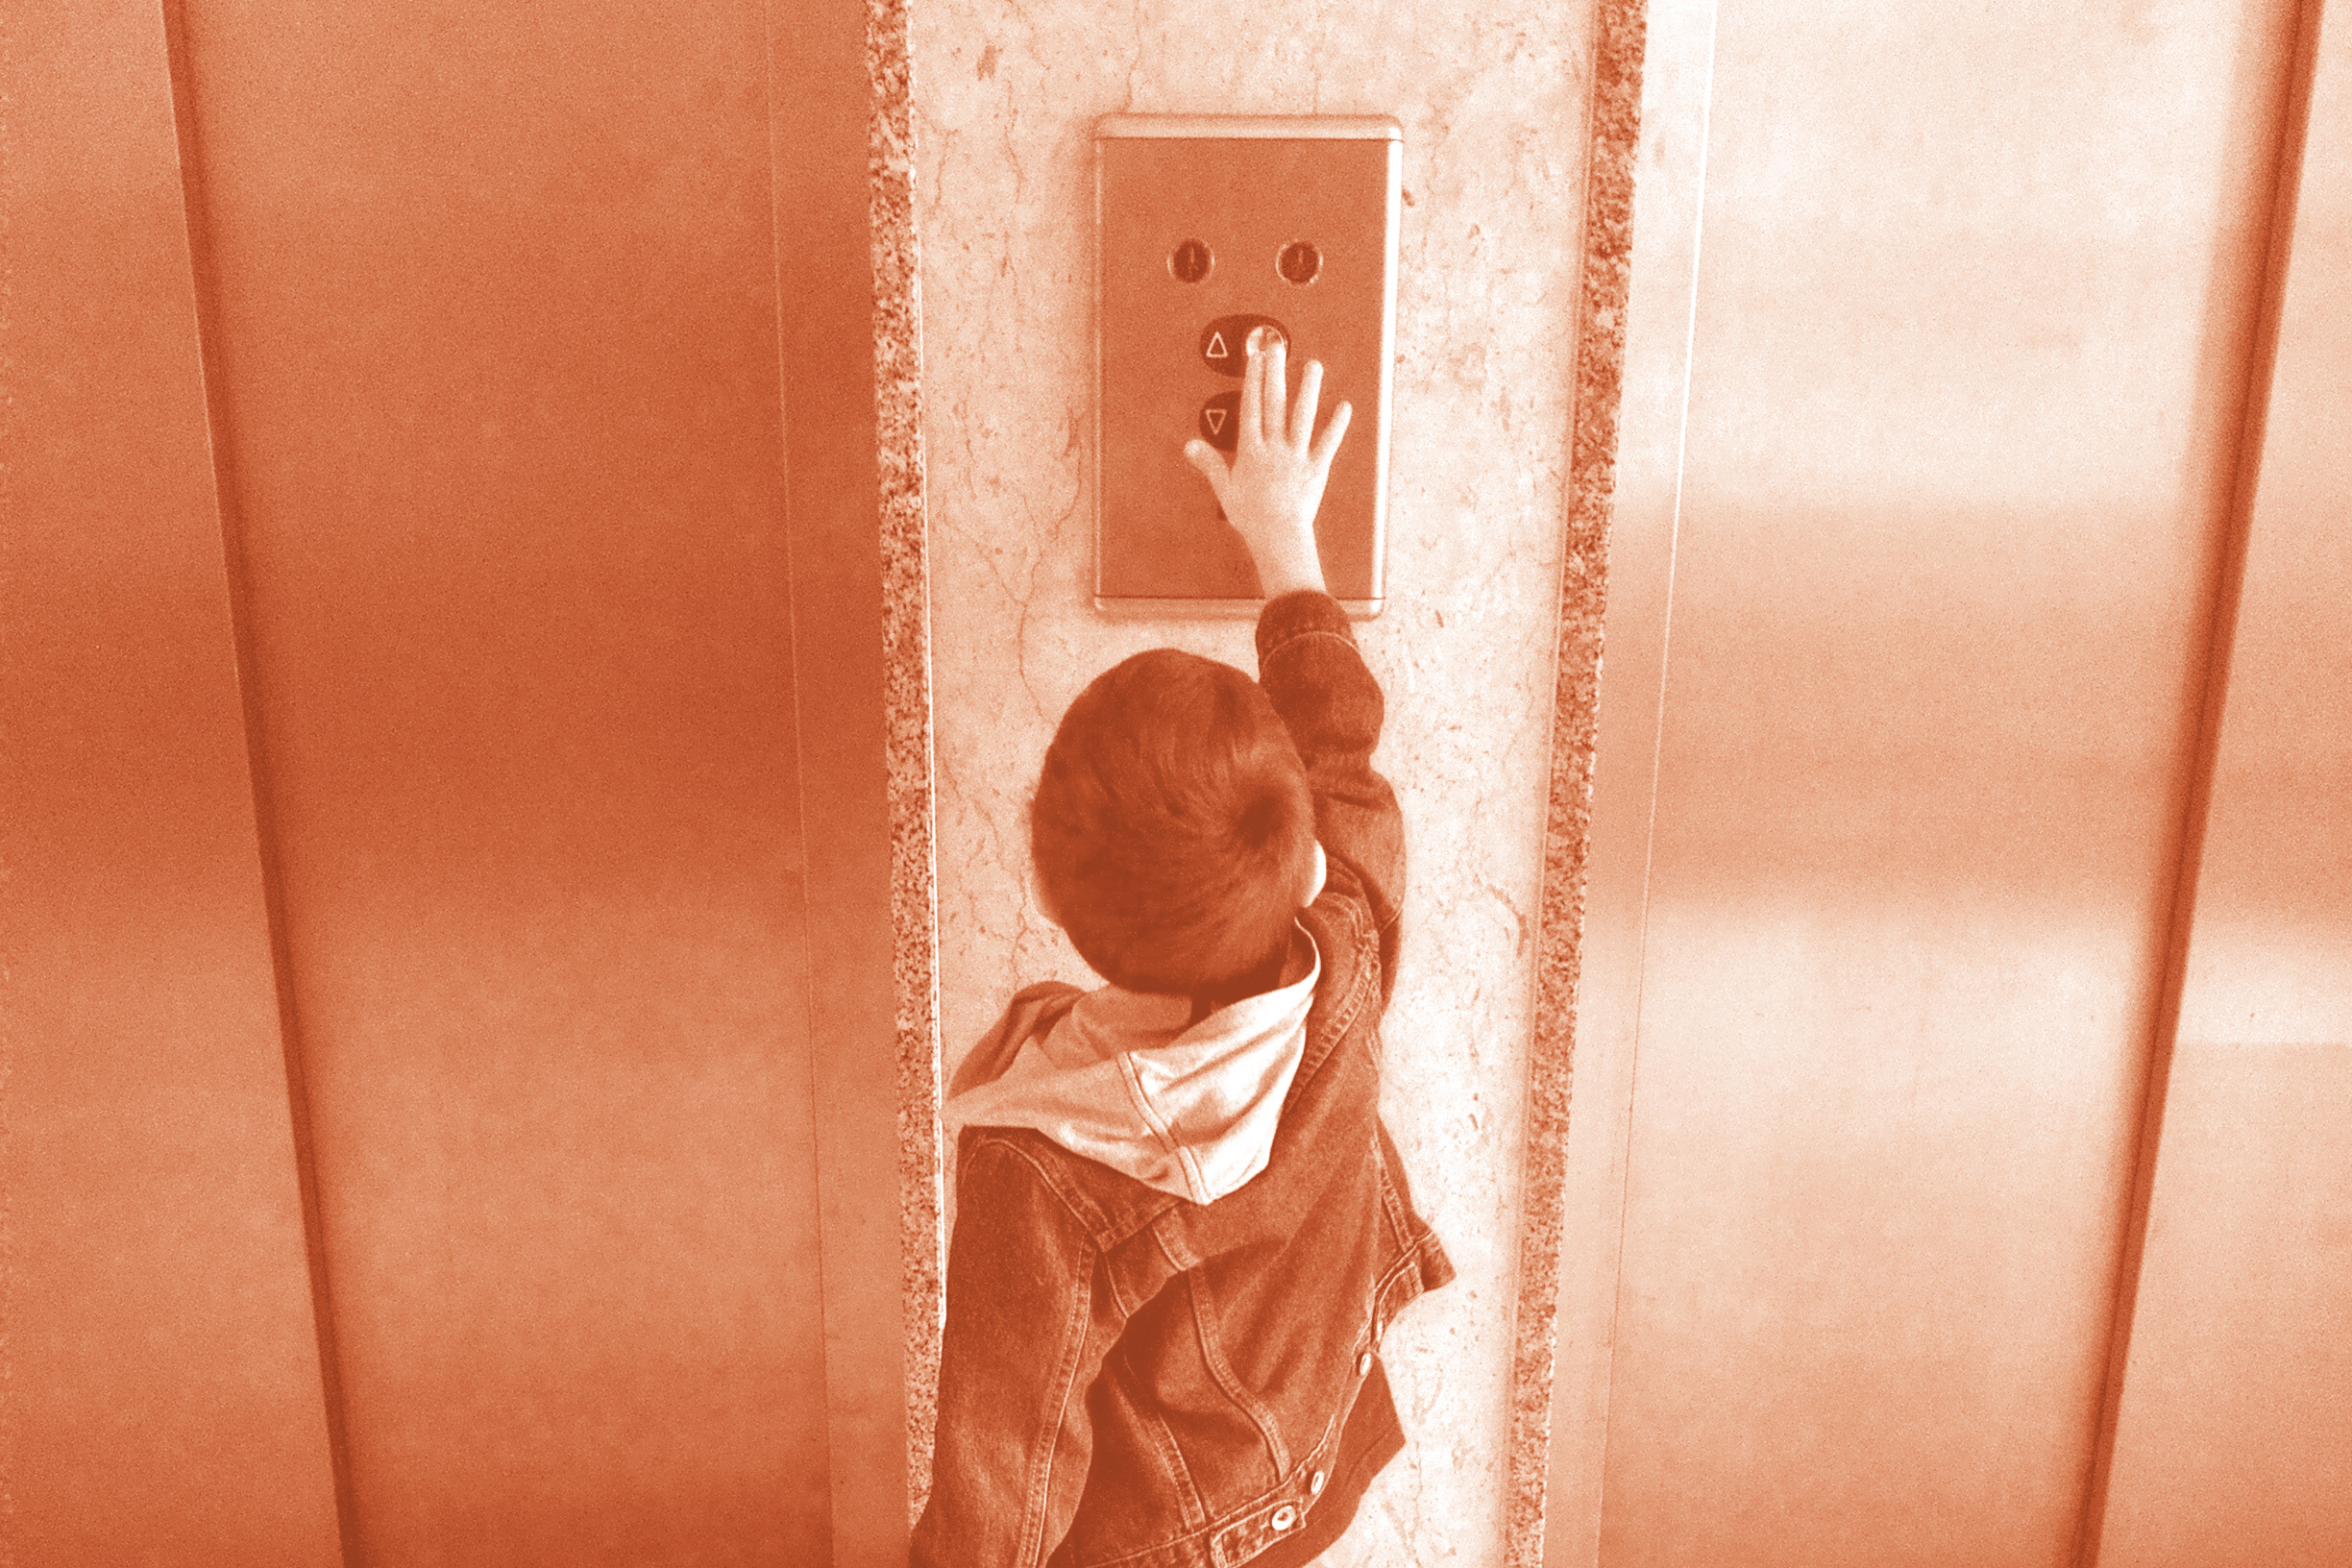 Elevators Can Be Dangerous for Kids. Here's What Parents Should Know